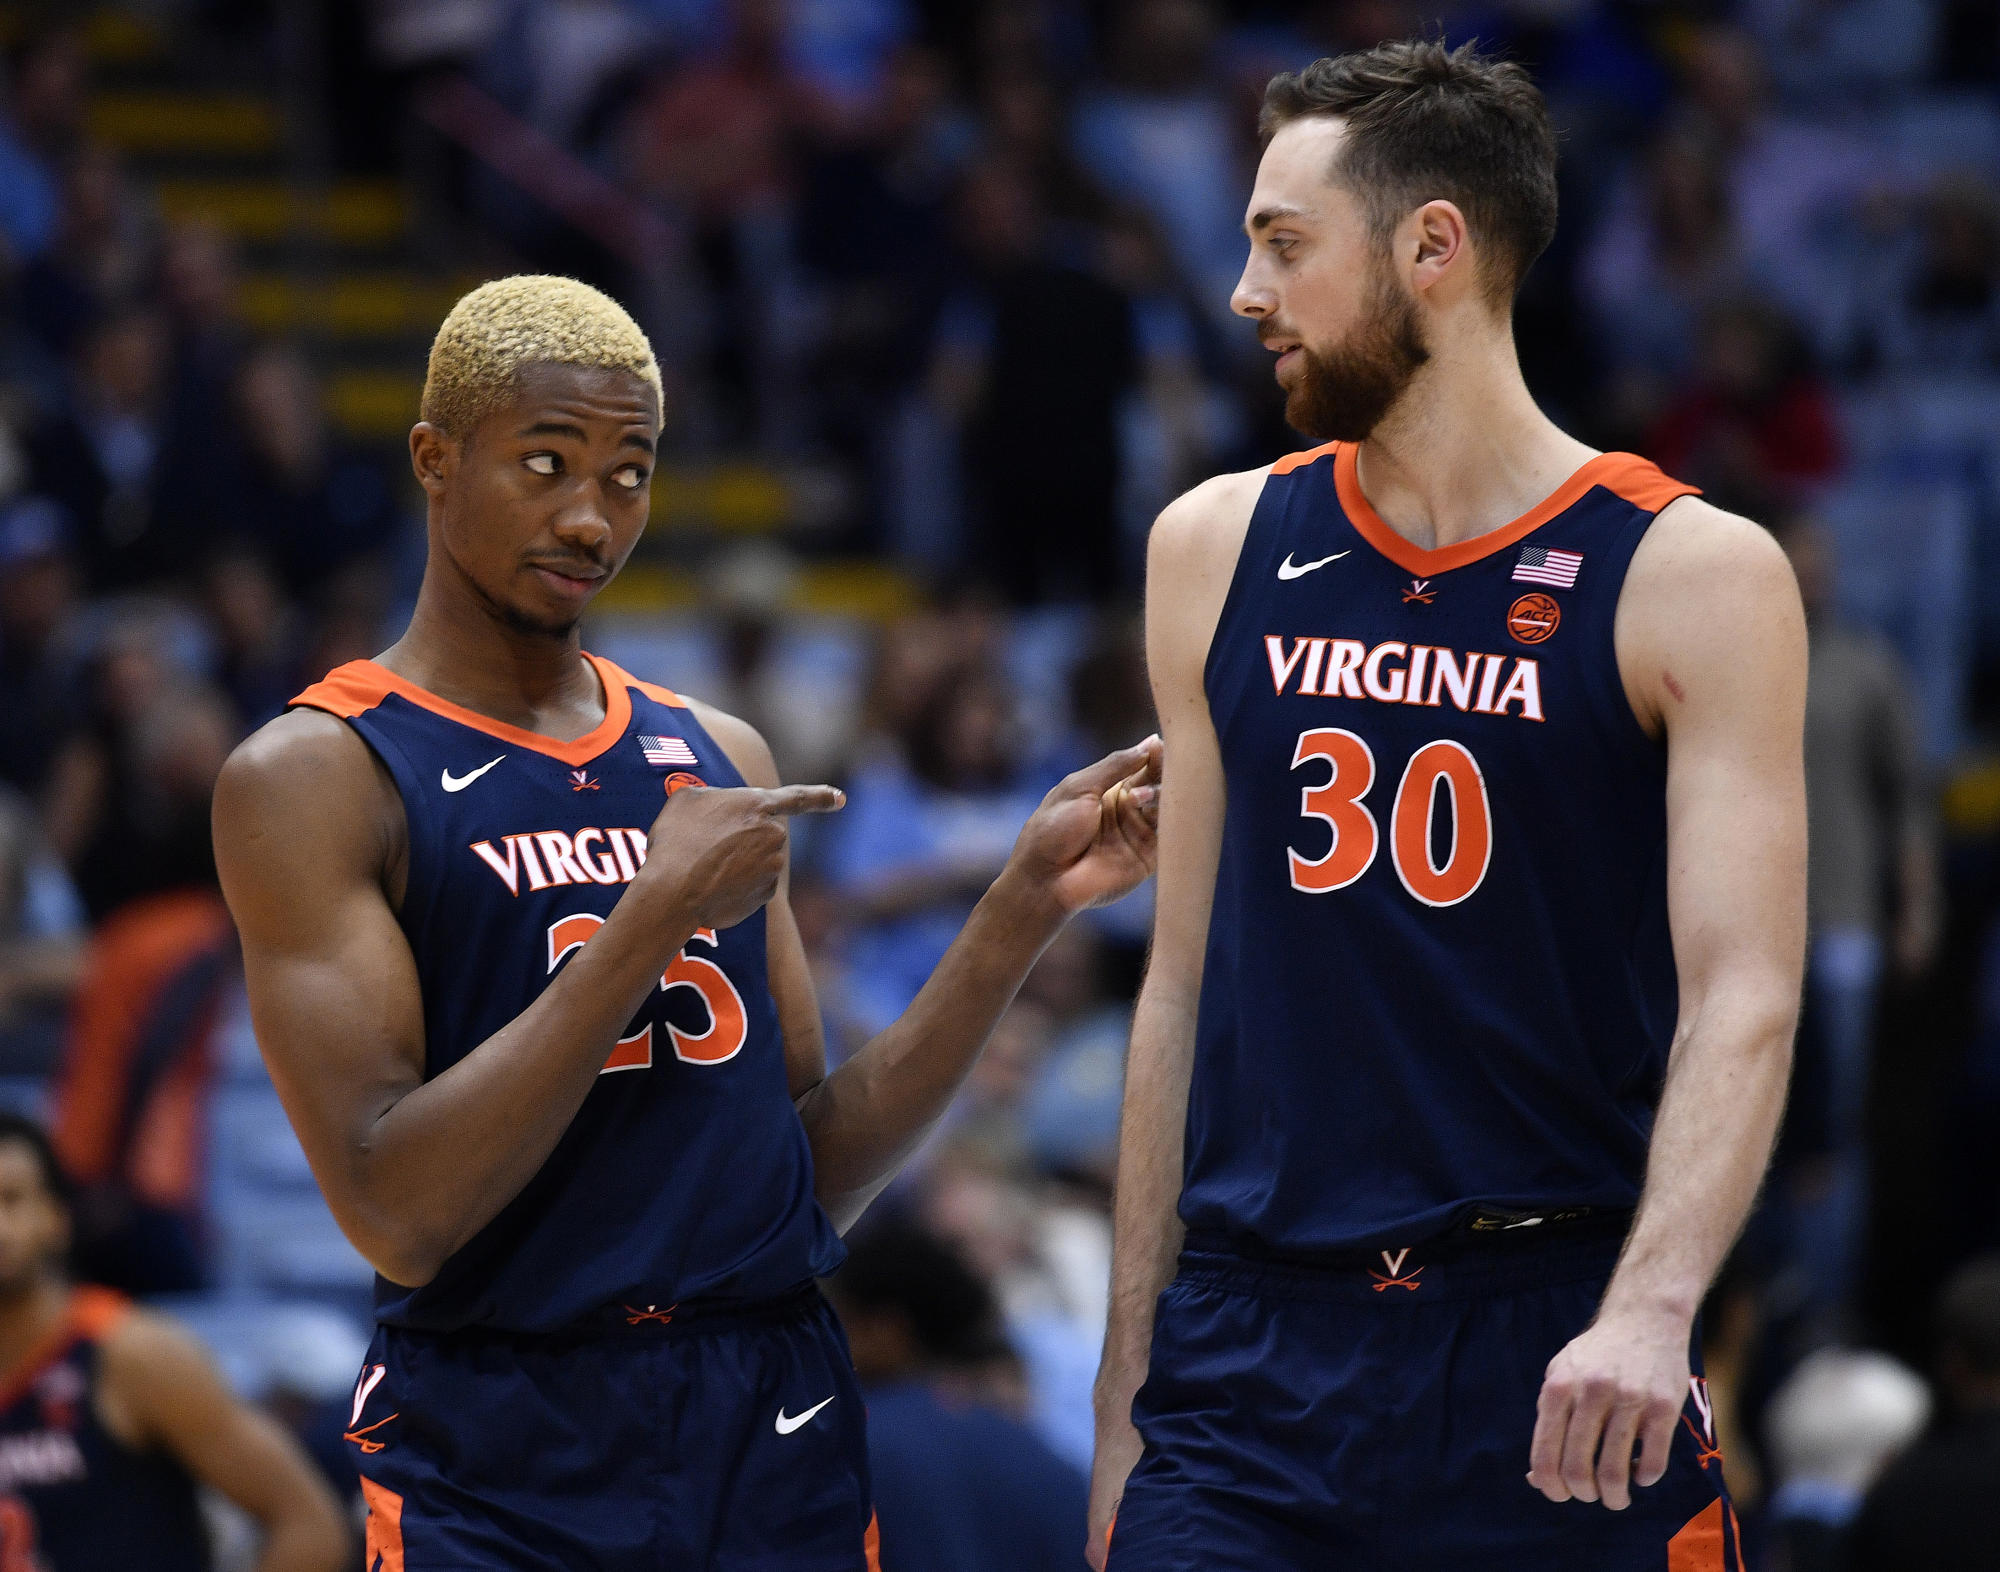 5 teams that need a late push to boost NCAA tournament seeding